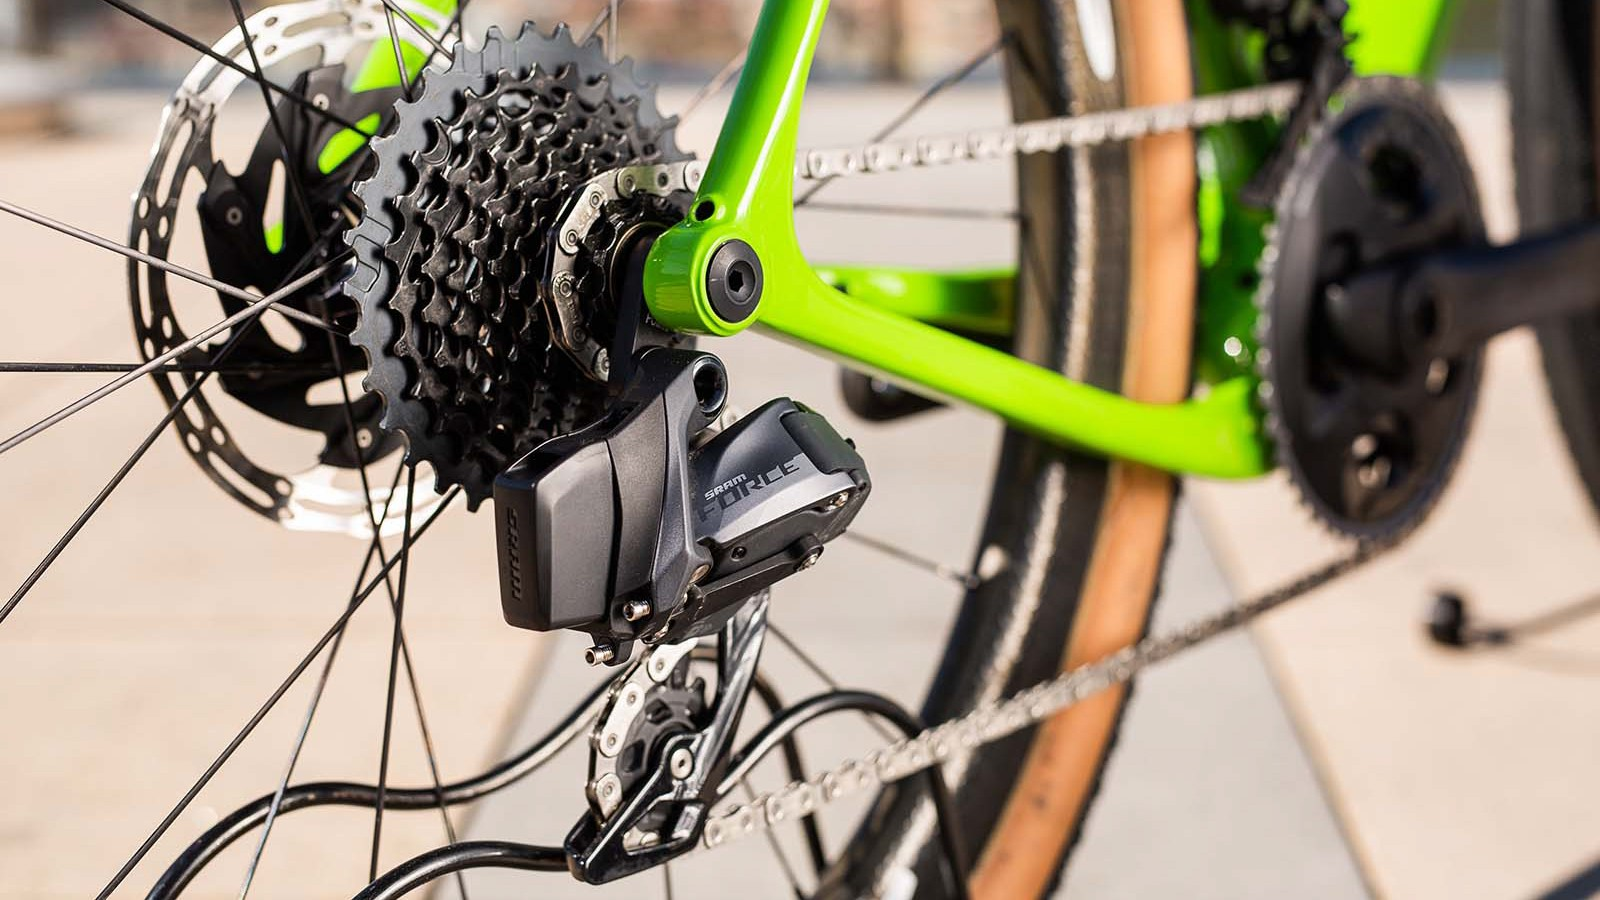 The Force eTap AXS rear mech uses the same motors and chipset as RED, and performs just as well